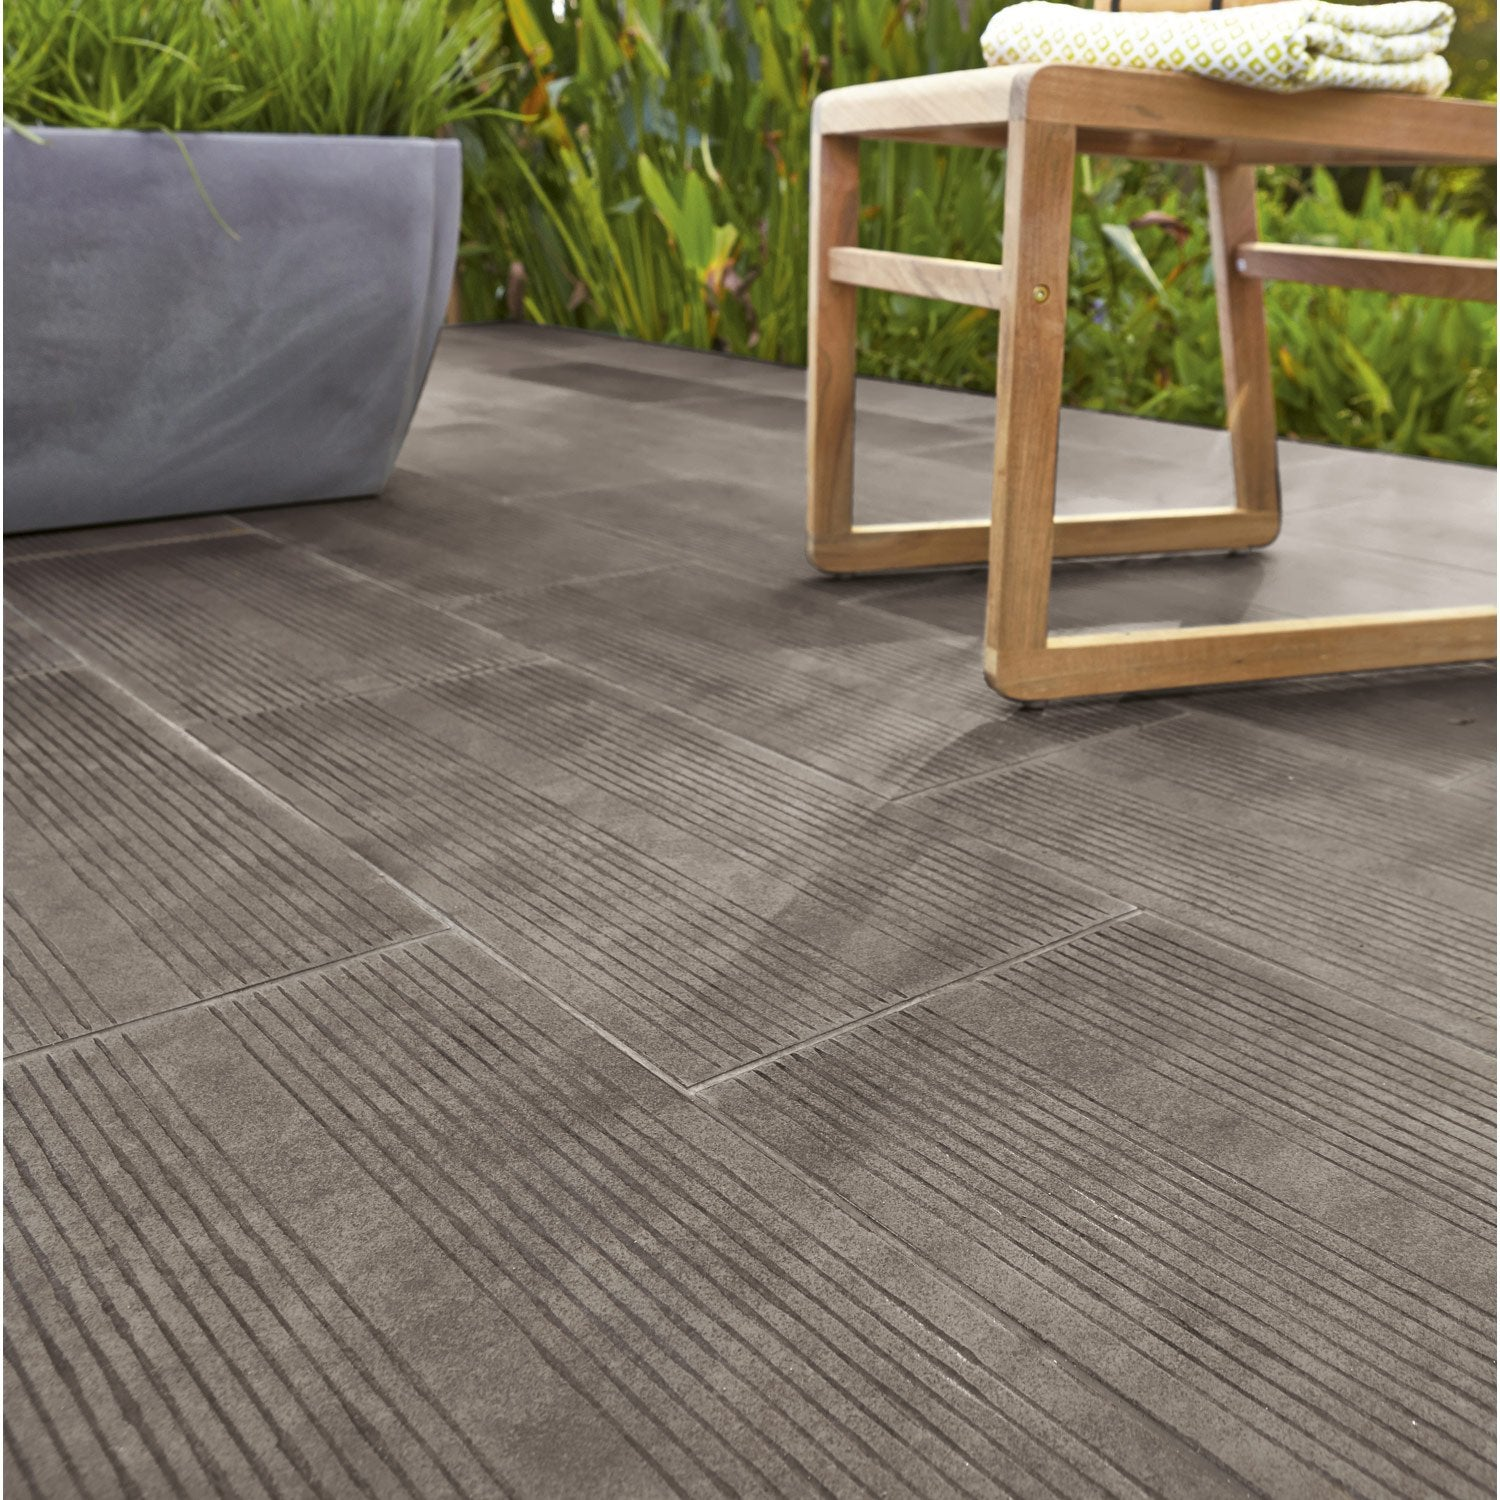 Carrelage design leroy merlin carrelage exterieur for Carrelage pour sol exterieur